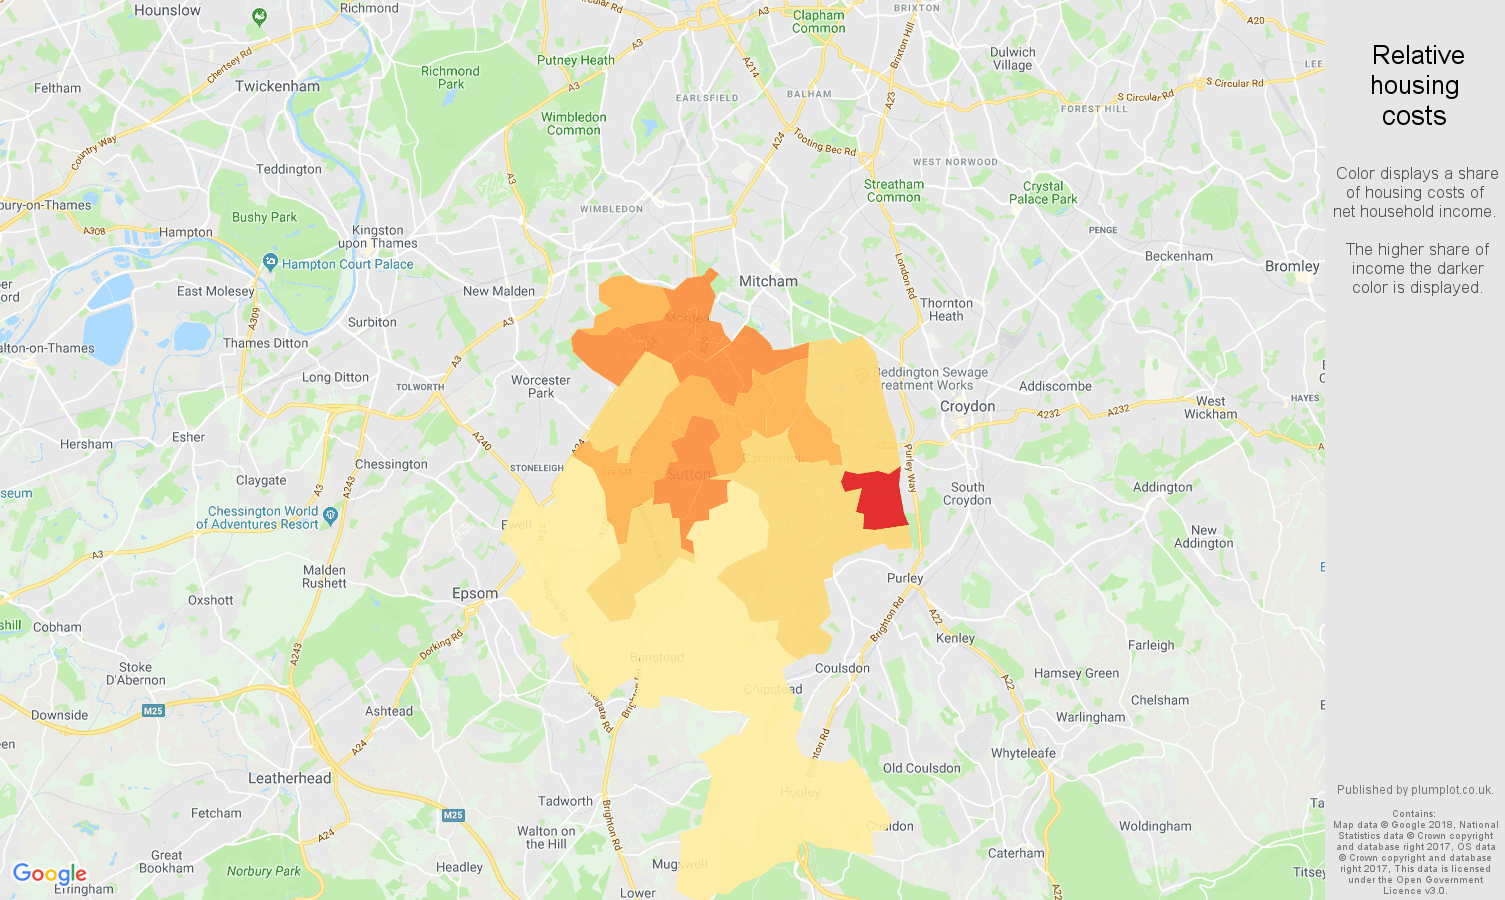 Sutton relative housing costs map